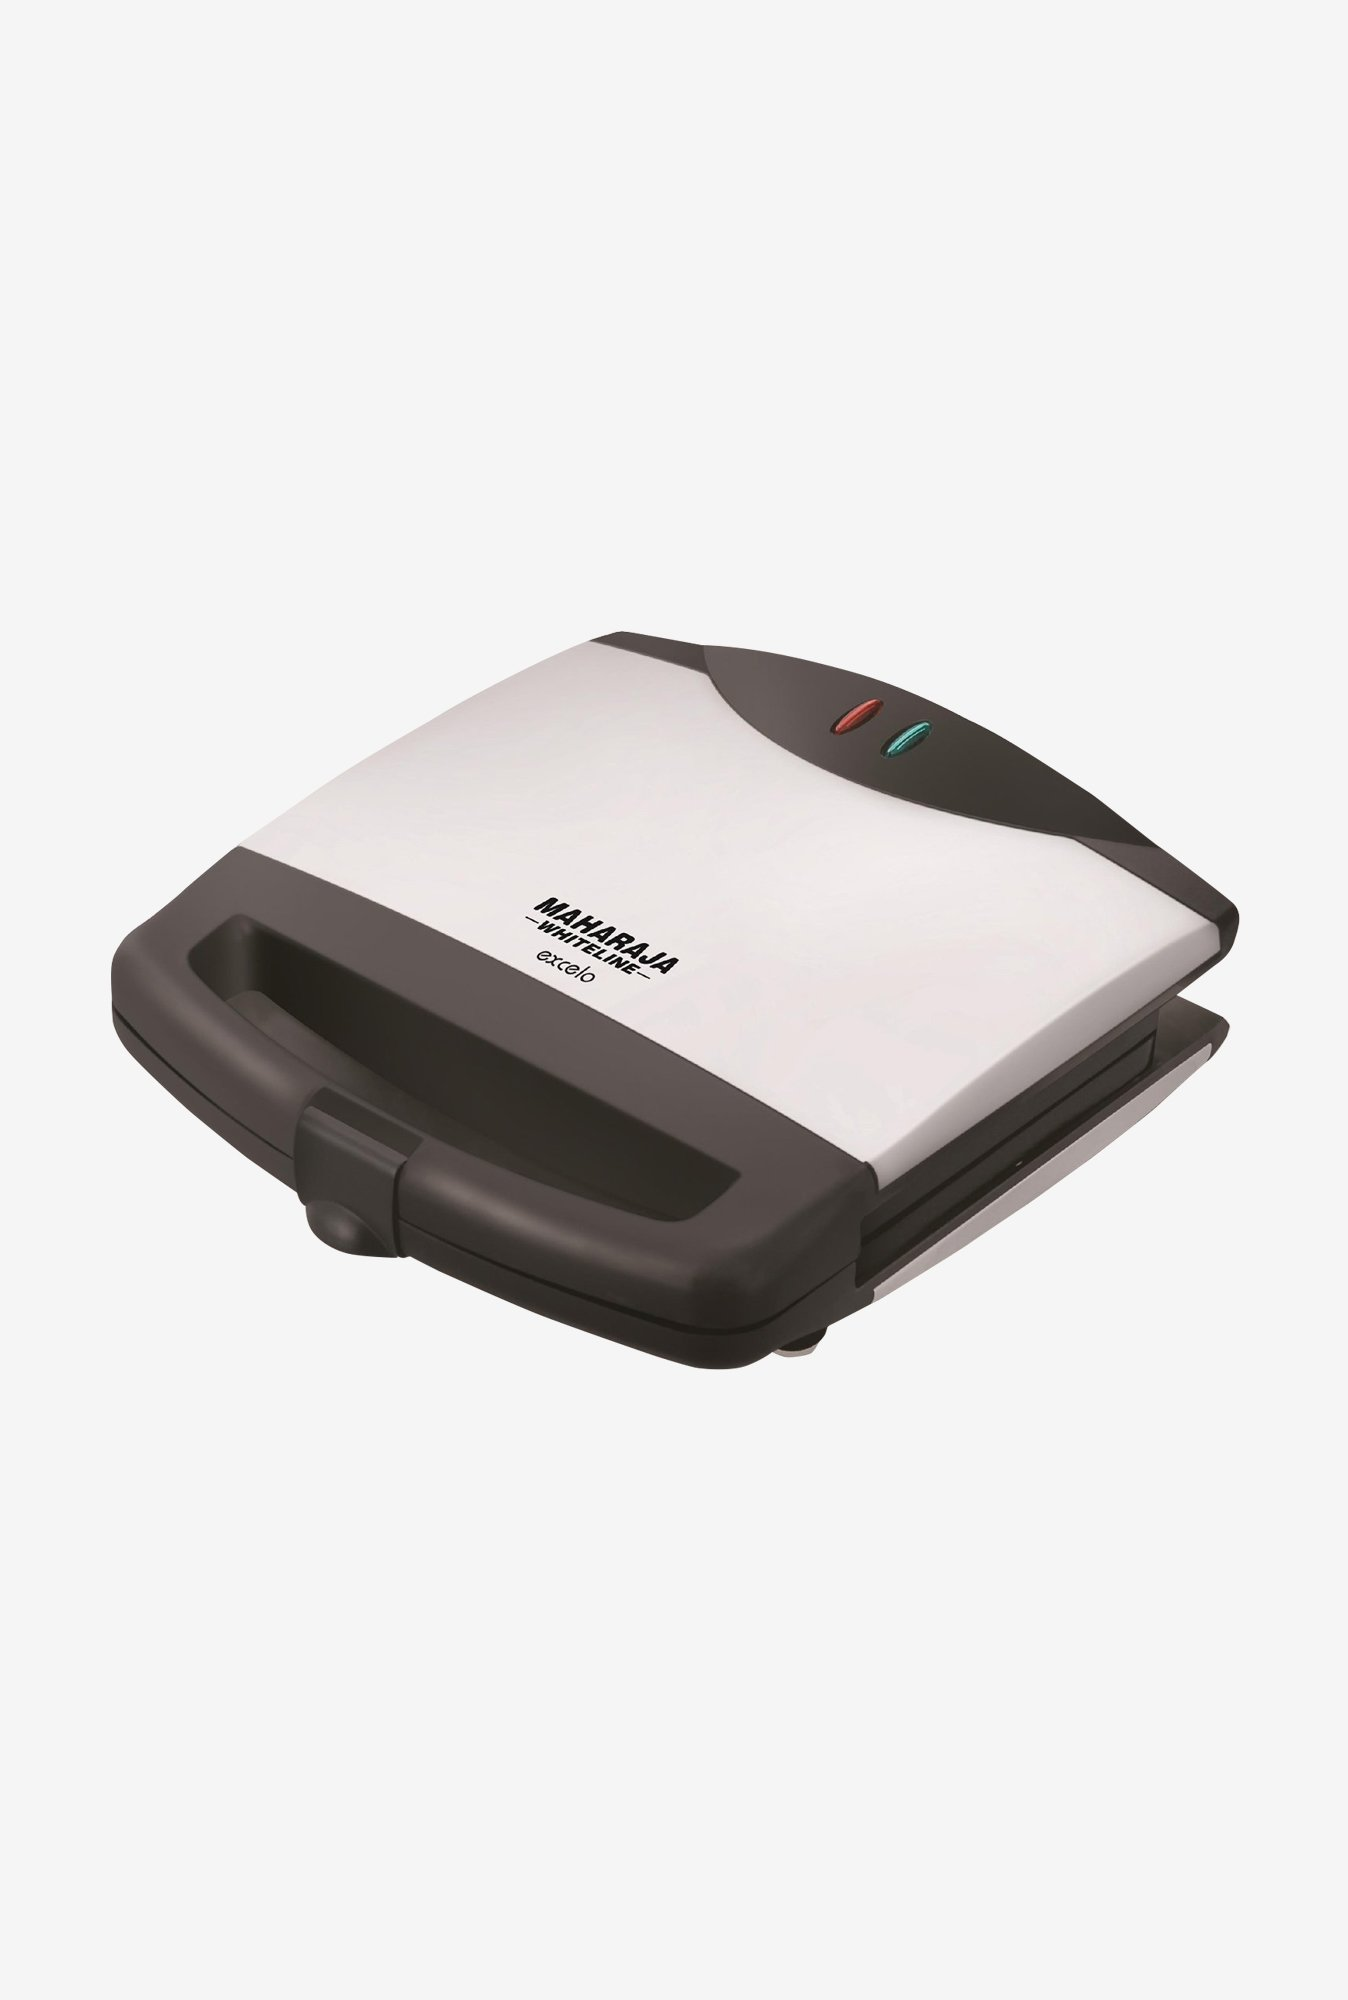 Maharaja Whiteline Excelo Sandwich Maker Black and Grey